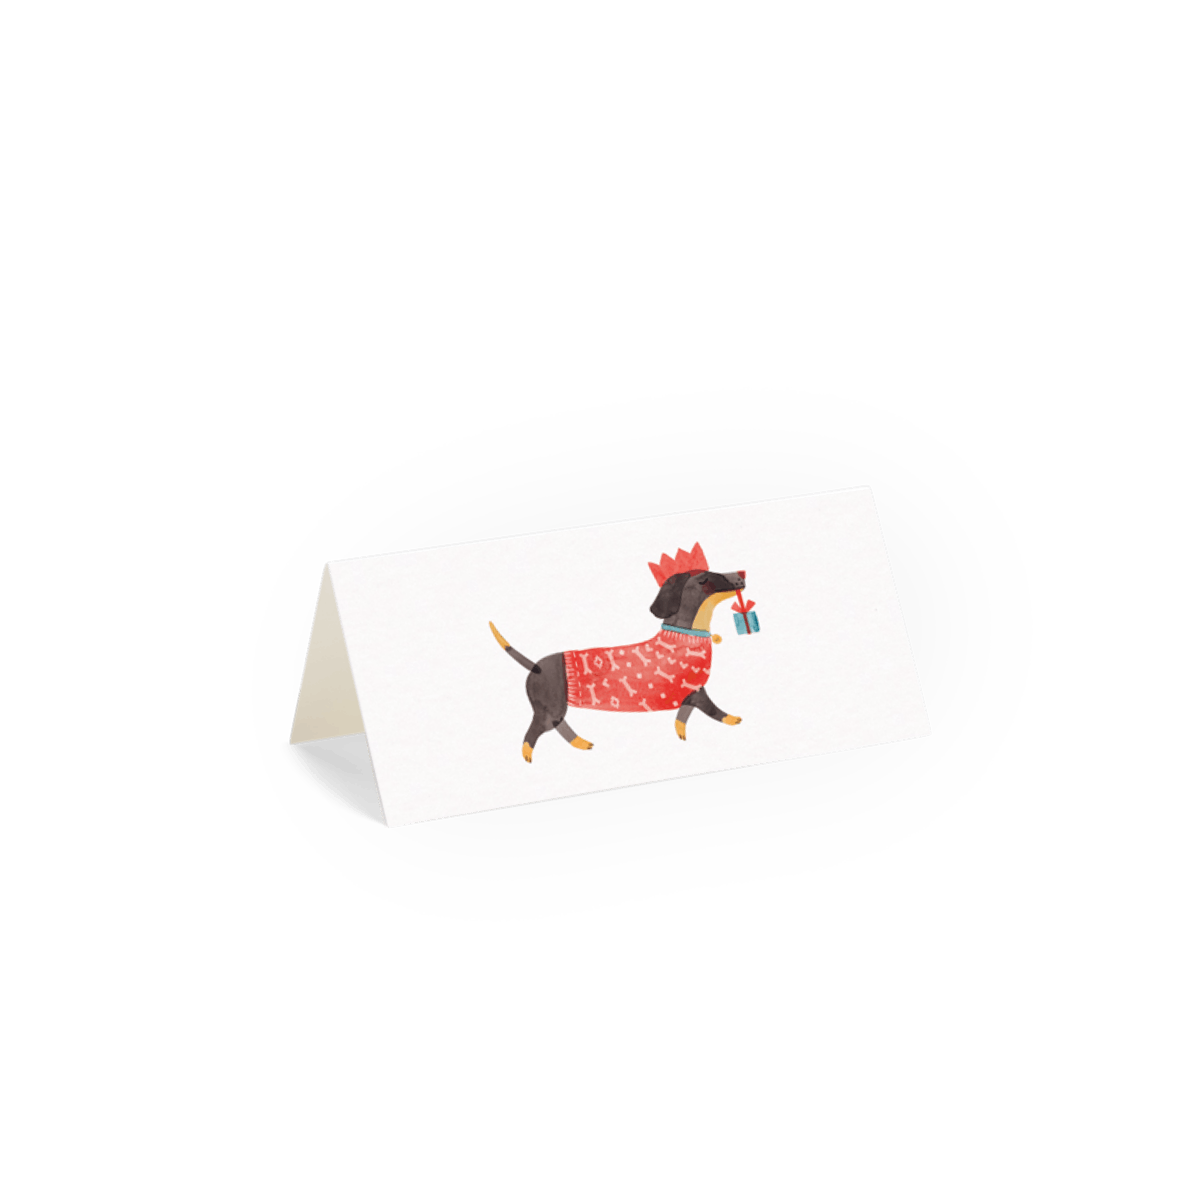 Https%3a%2f%2fwww.papier.com%2fproduct image%2f81726%2f15%2fchristmas dachshund 19665 arriere 1561991143.png?ixlib=rb 1.1